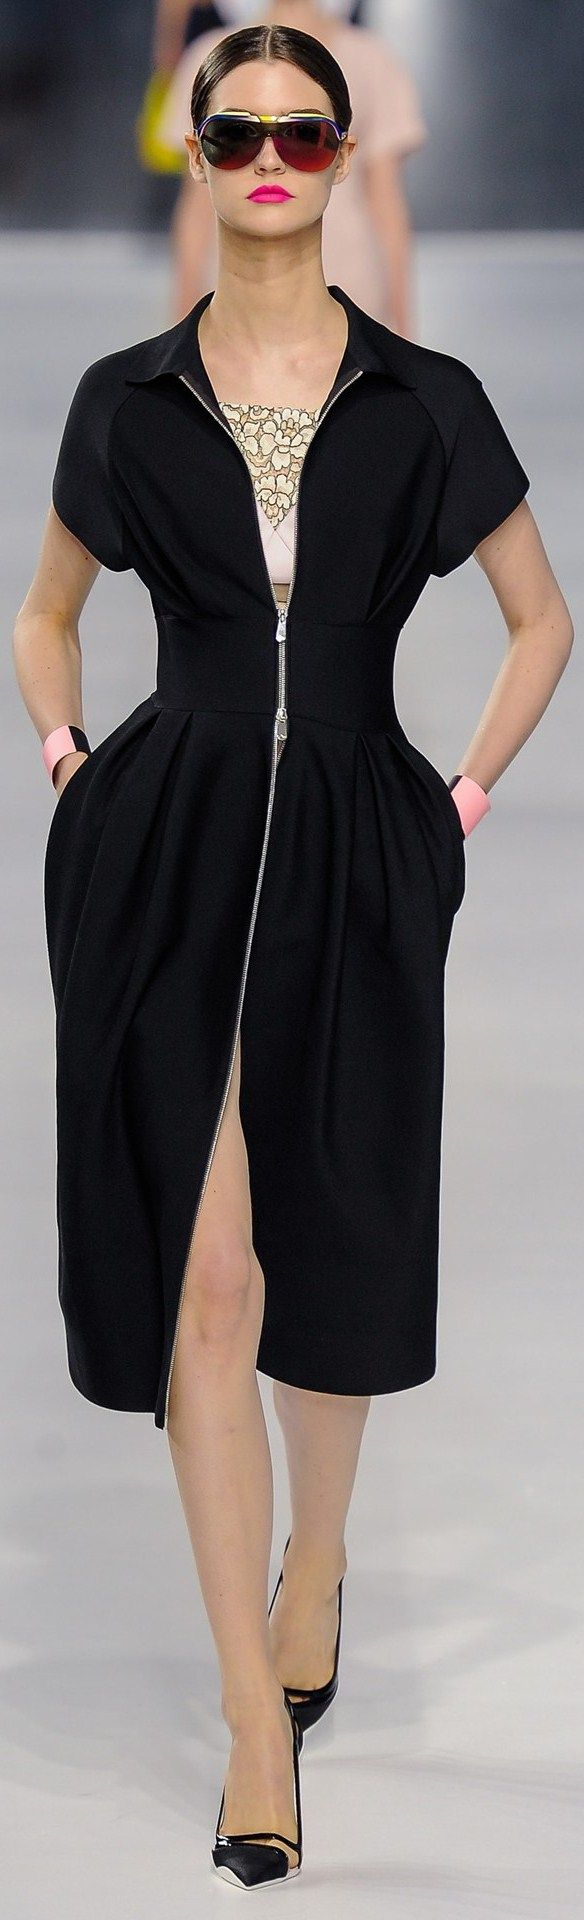 Christian Dior ●  Pre SPRING/SUMMER 2014  I like this dress.... Did you find the reason why?  ;-)